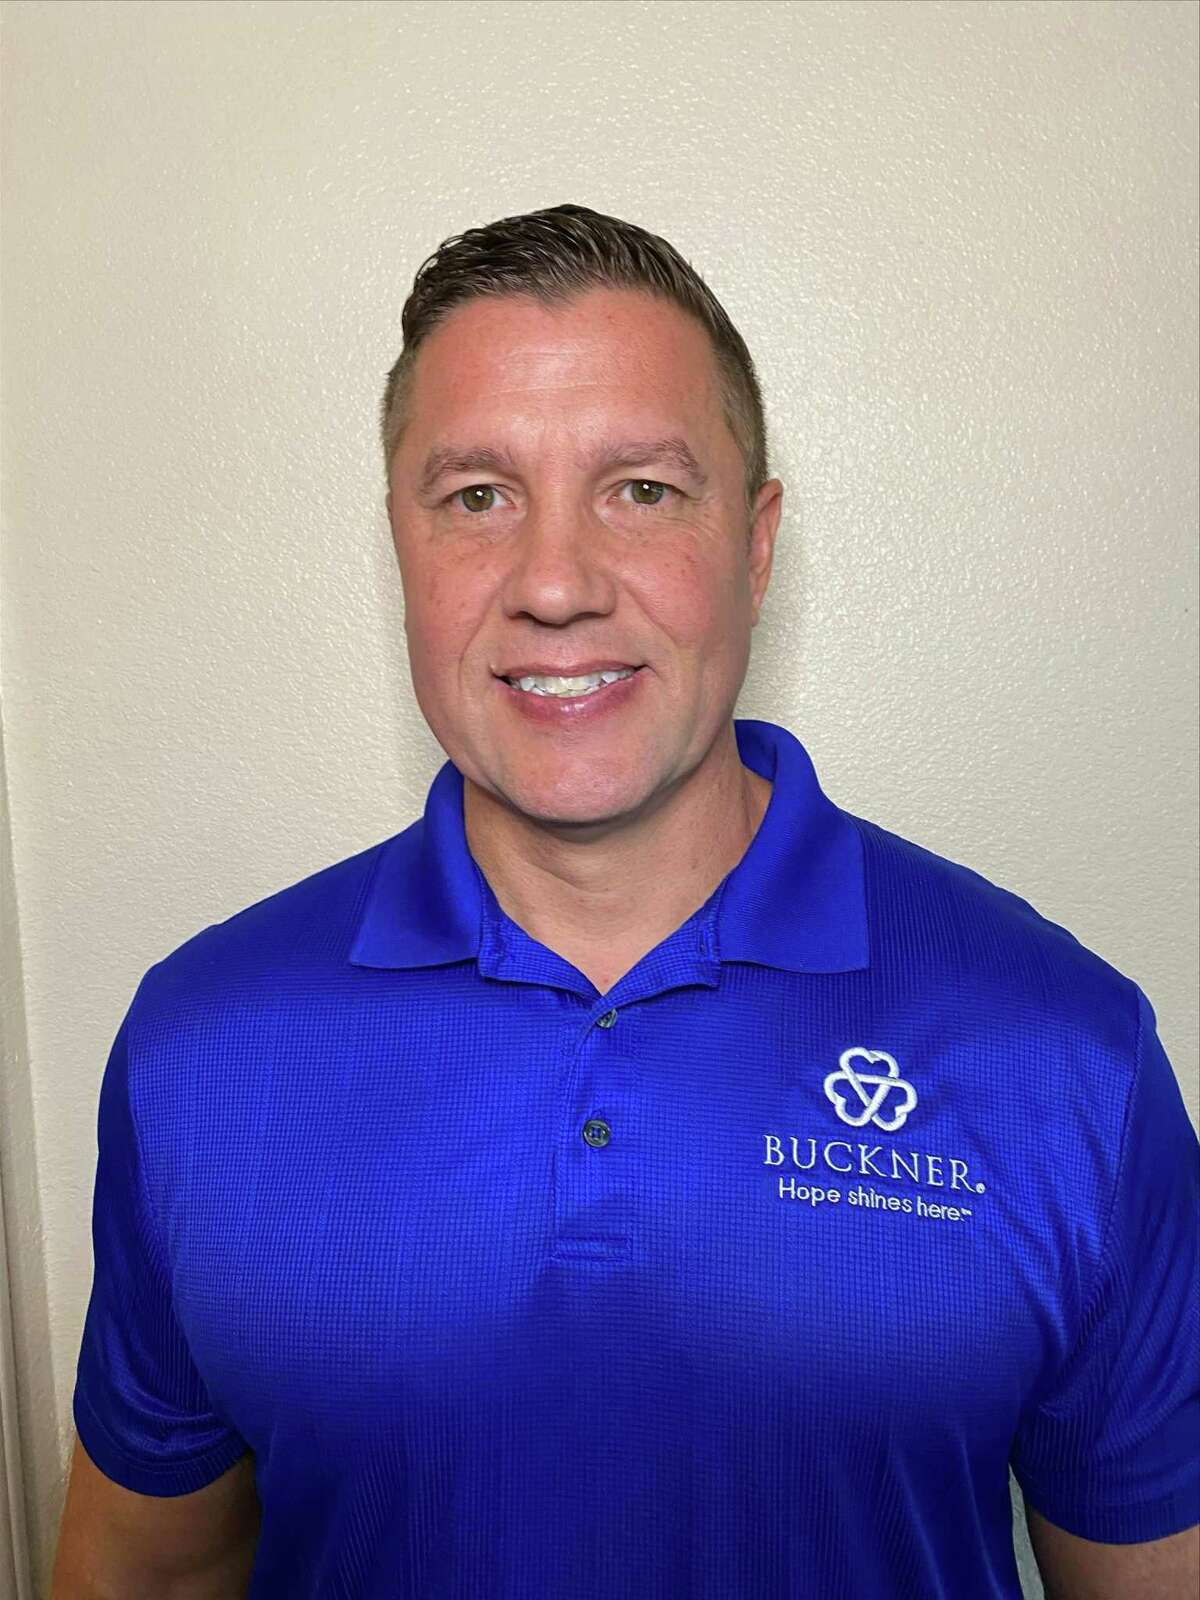 Jeff Ross, interim senior executive director for Buckner Children and Family Services in Southeast Texas